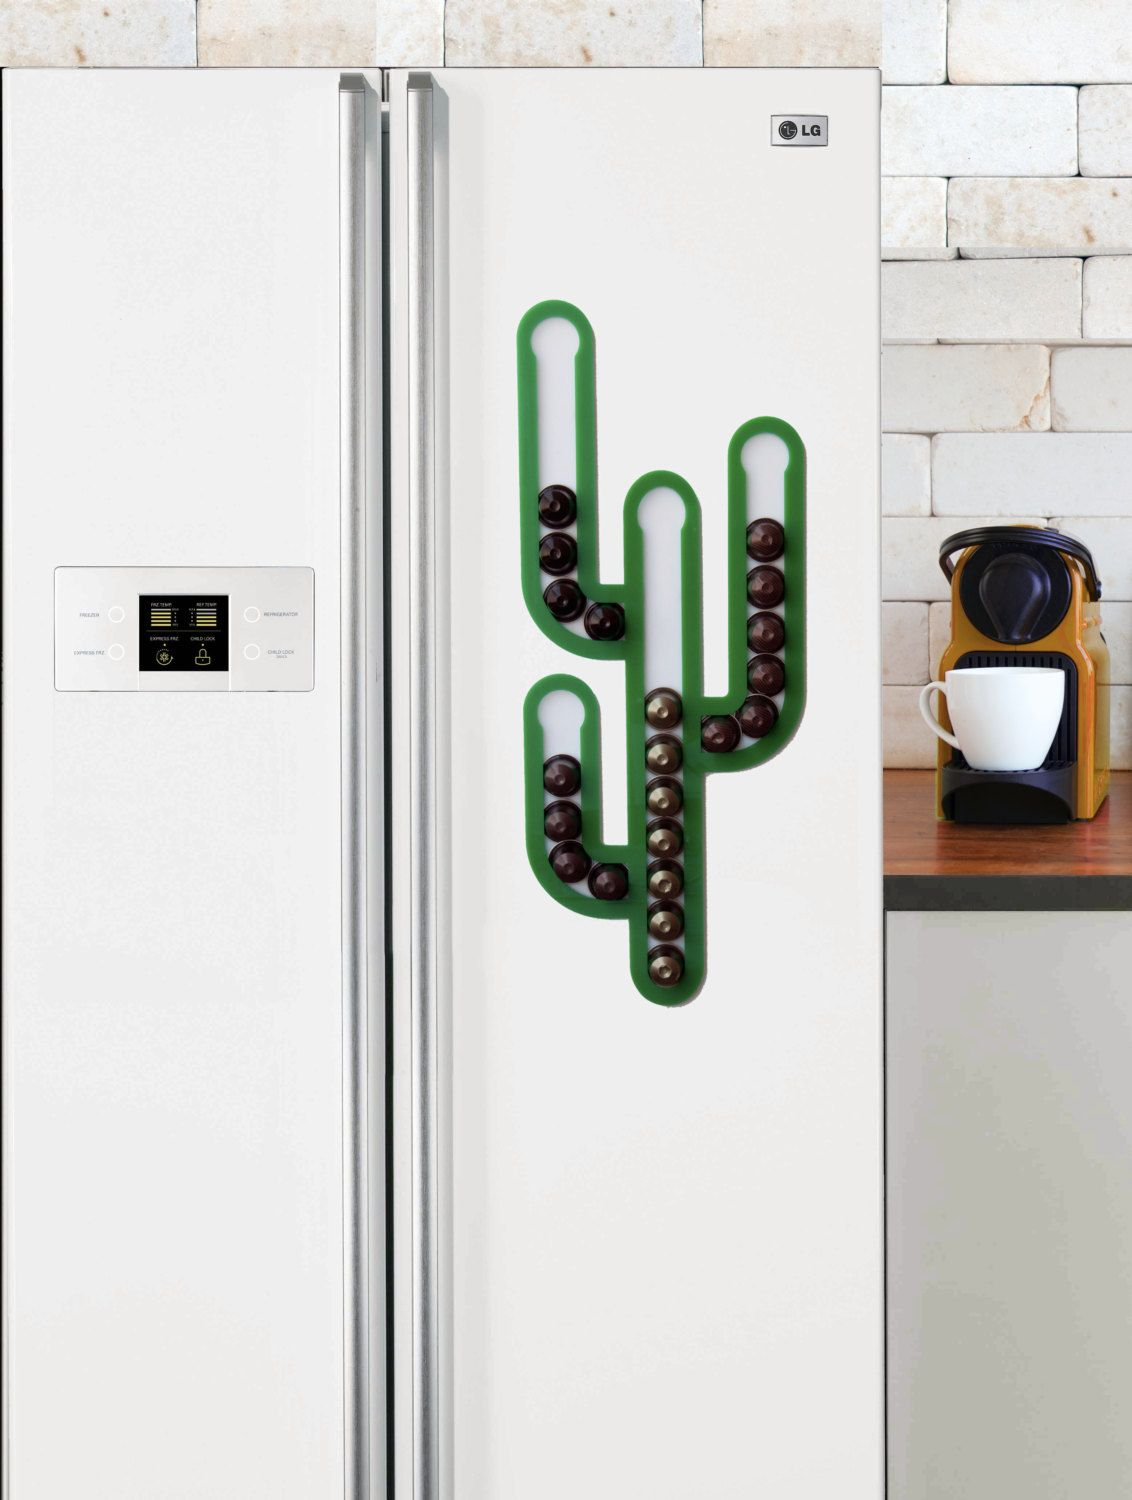 Cactus Magnetic Nespresso Coffee Capsules Holder Holds 35 Nespresso Pods  Storage Coffee Nespresso Pod Stand Kitchen Decor Housewarming Gift (59.90  USD) By ...